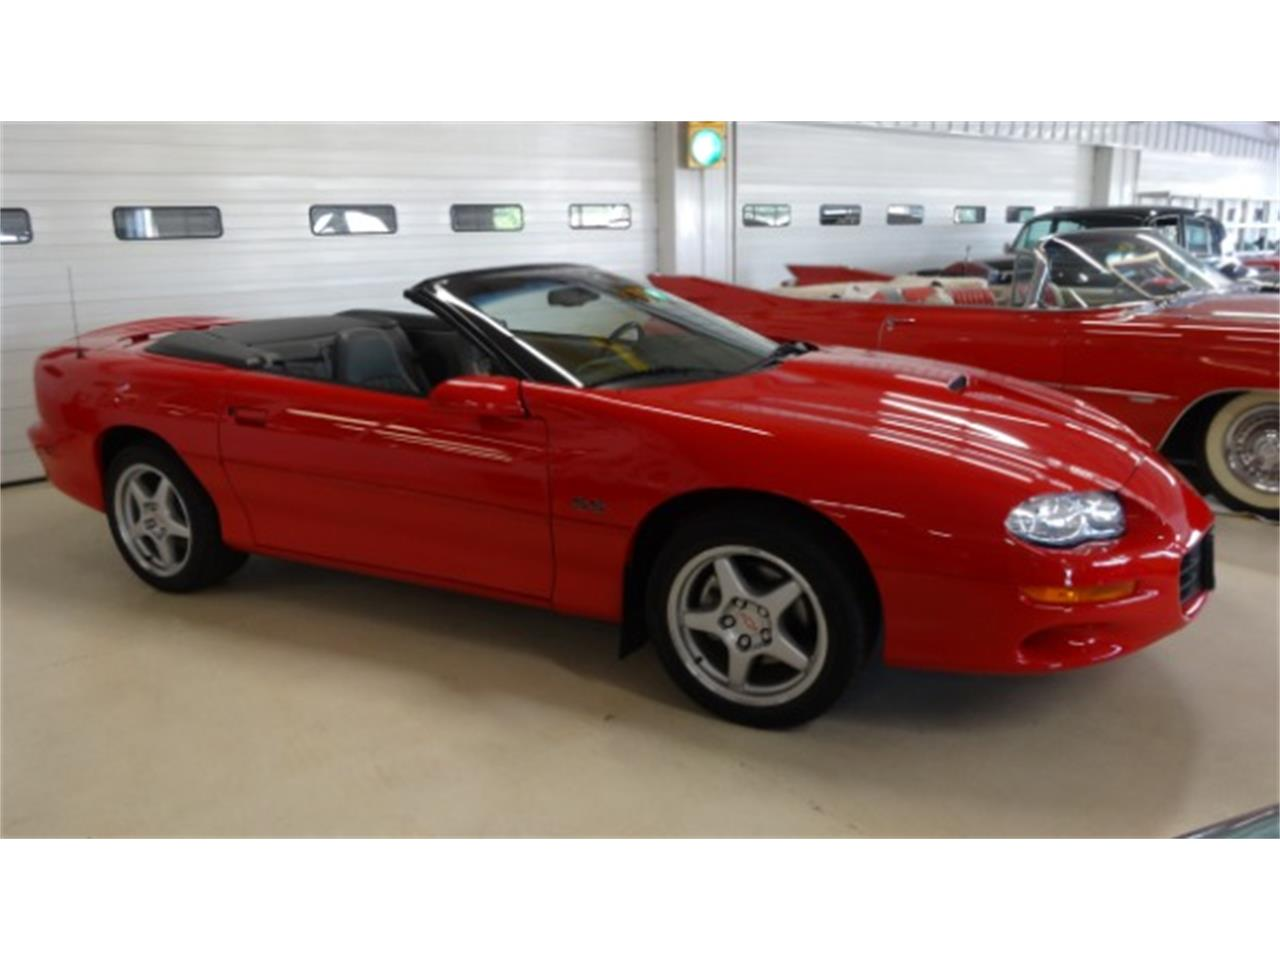 Chevrolet Dealers In Columbus Ohio U003eu003e 1999 Chevrolet Camaro For Sale |  ClassicCars.com